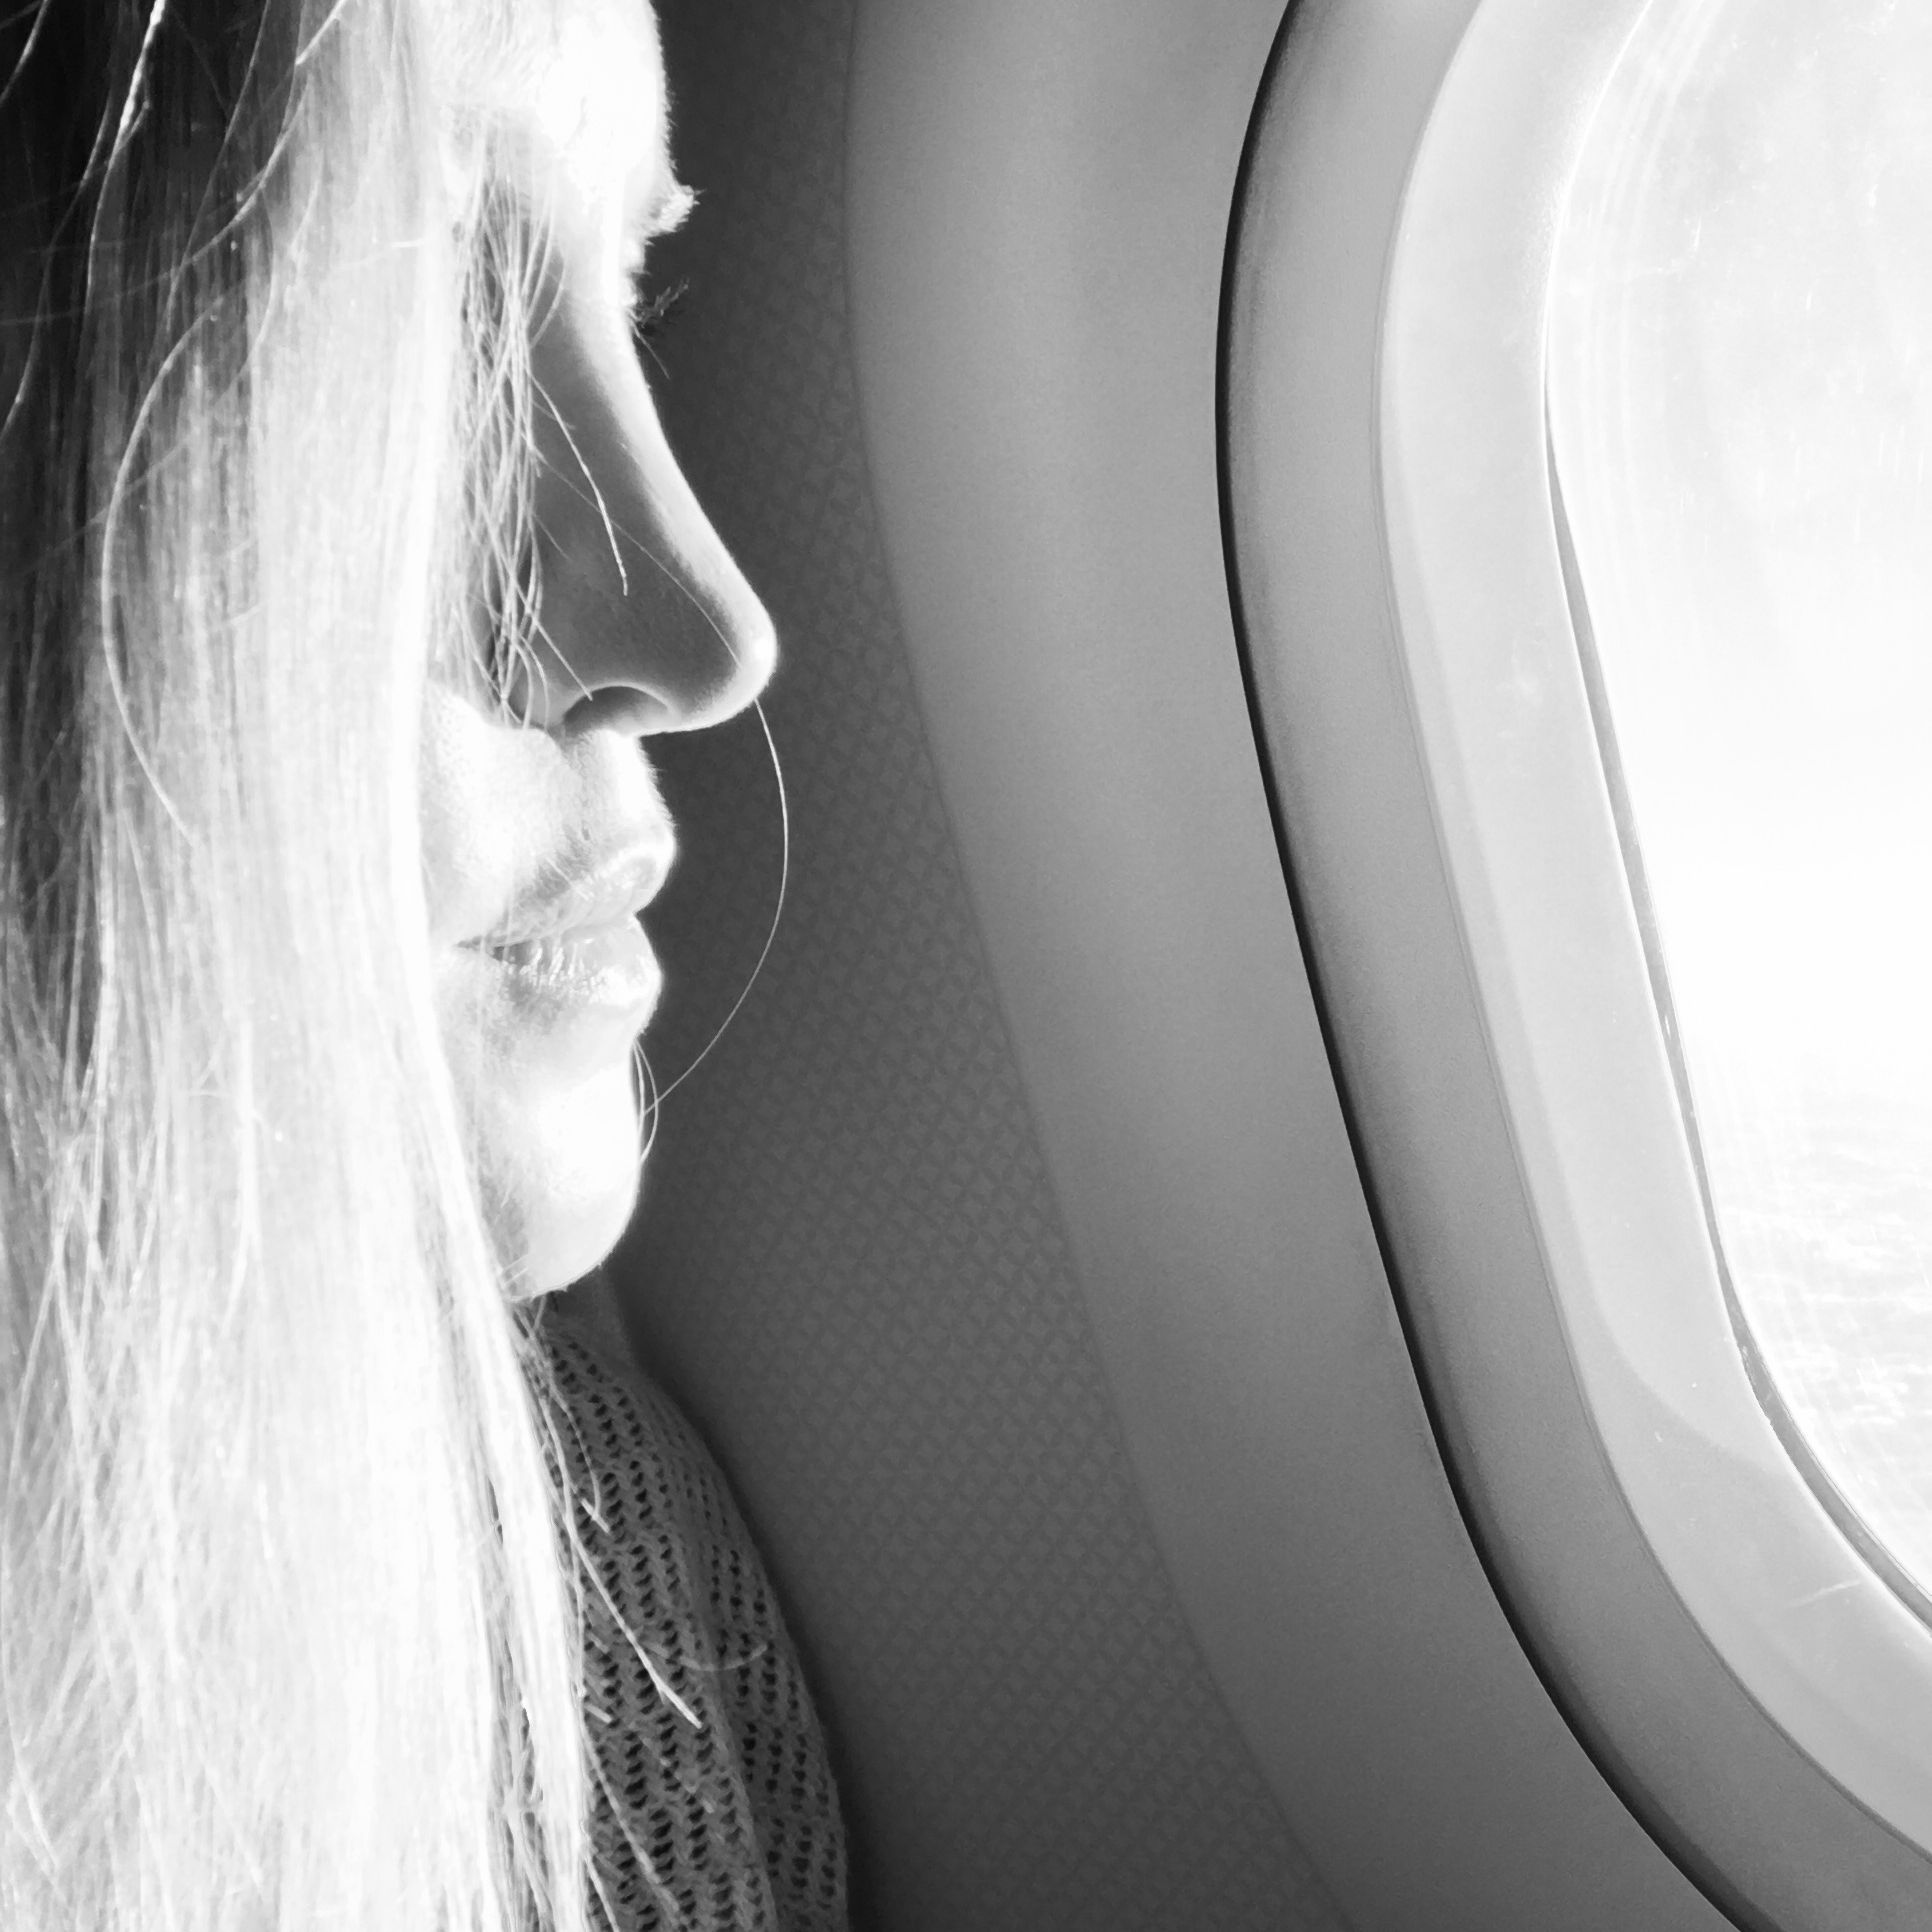 Black and white image of Ashlee Dozier, Owner of Anuket Luxury Apothecary, in flight looking out of the airplane window. Link to blog post.